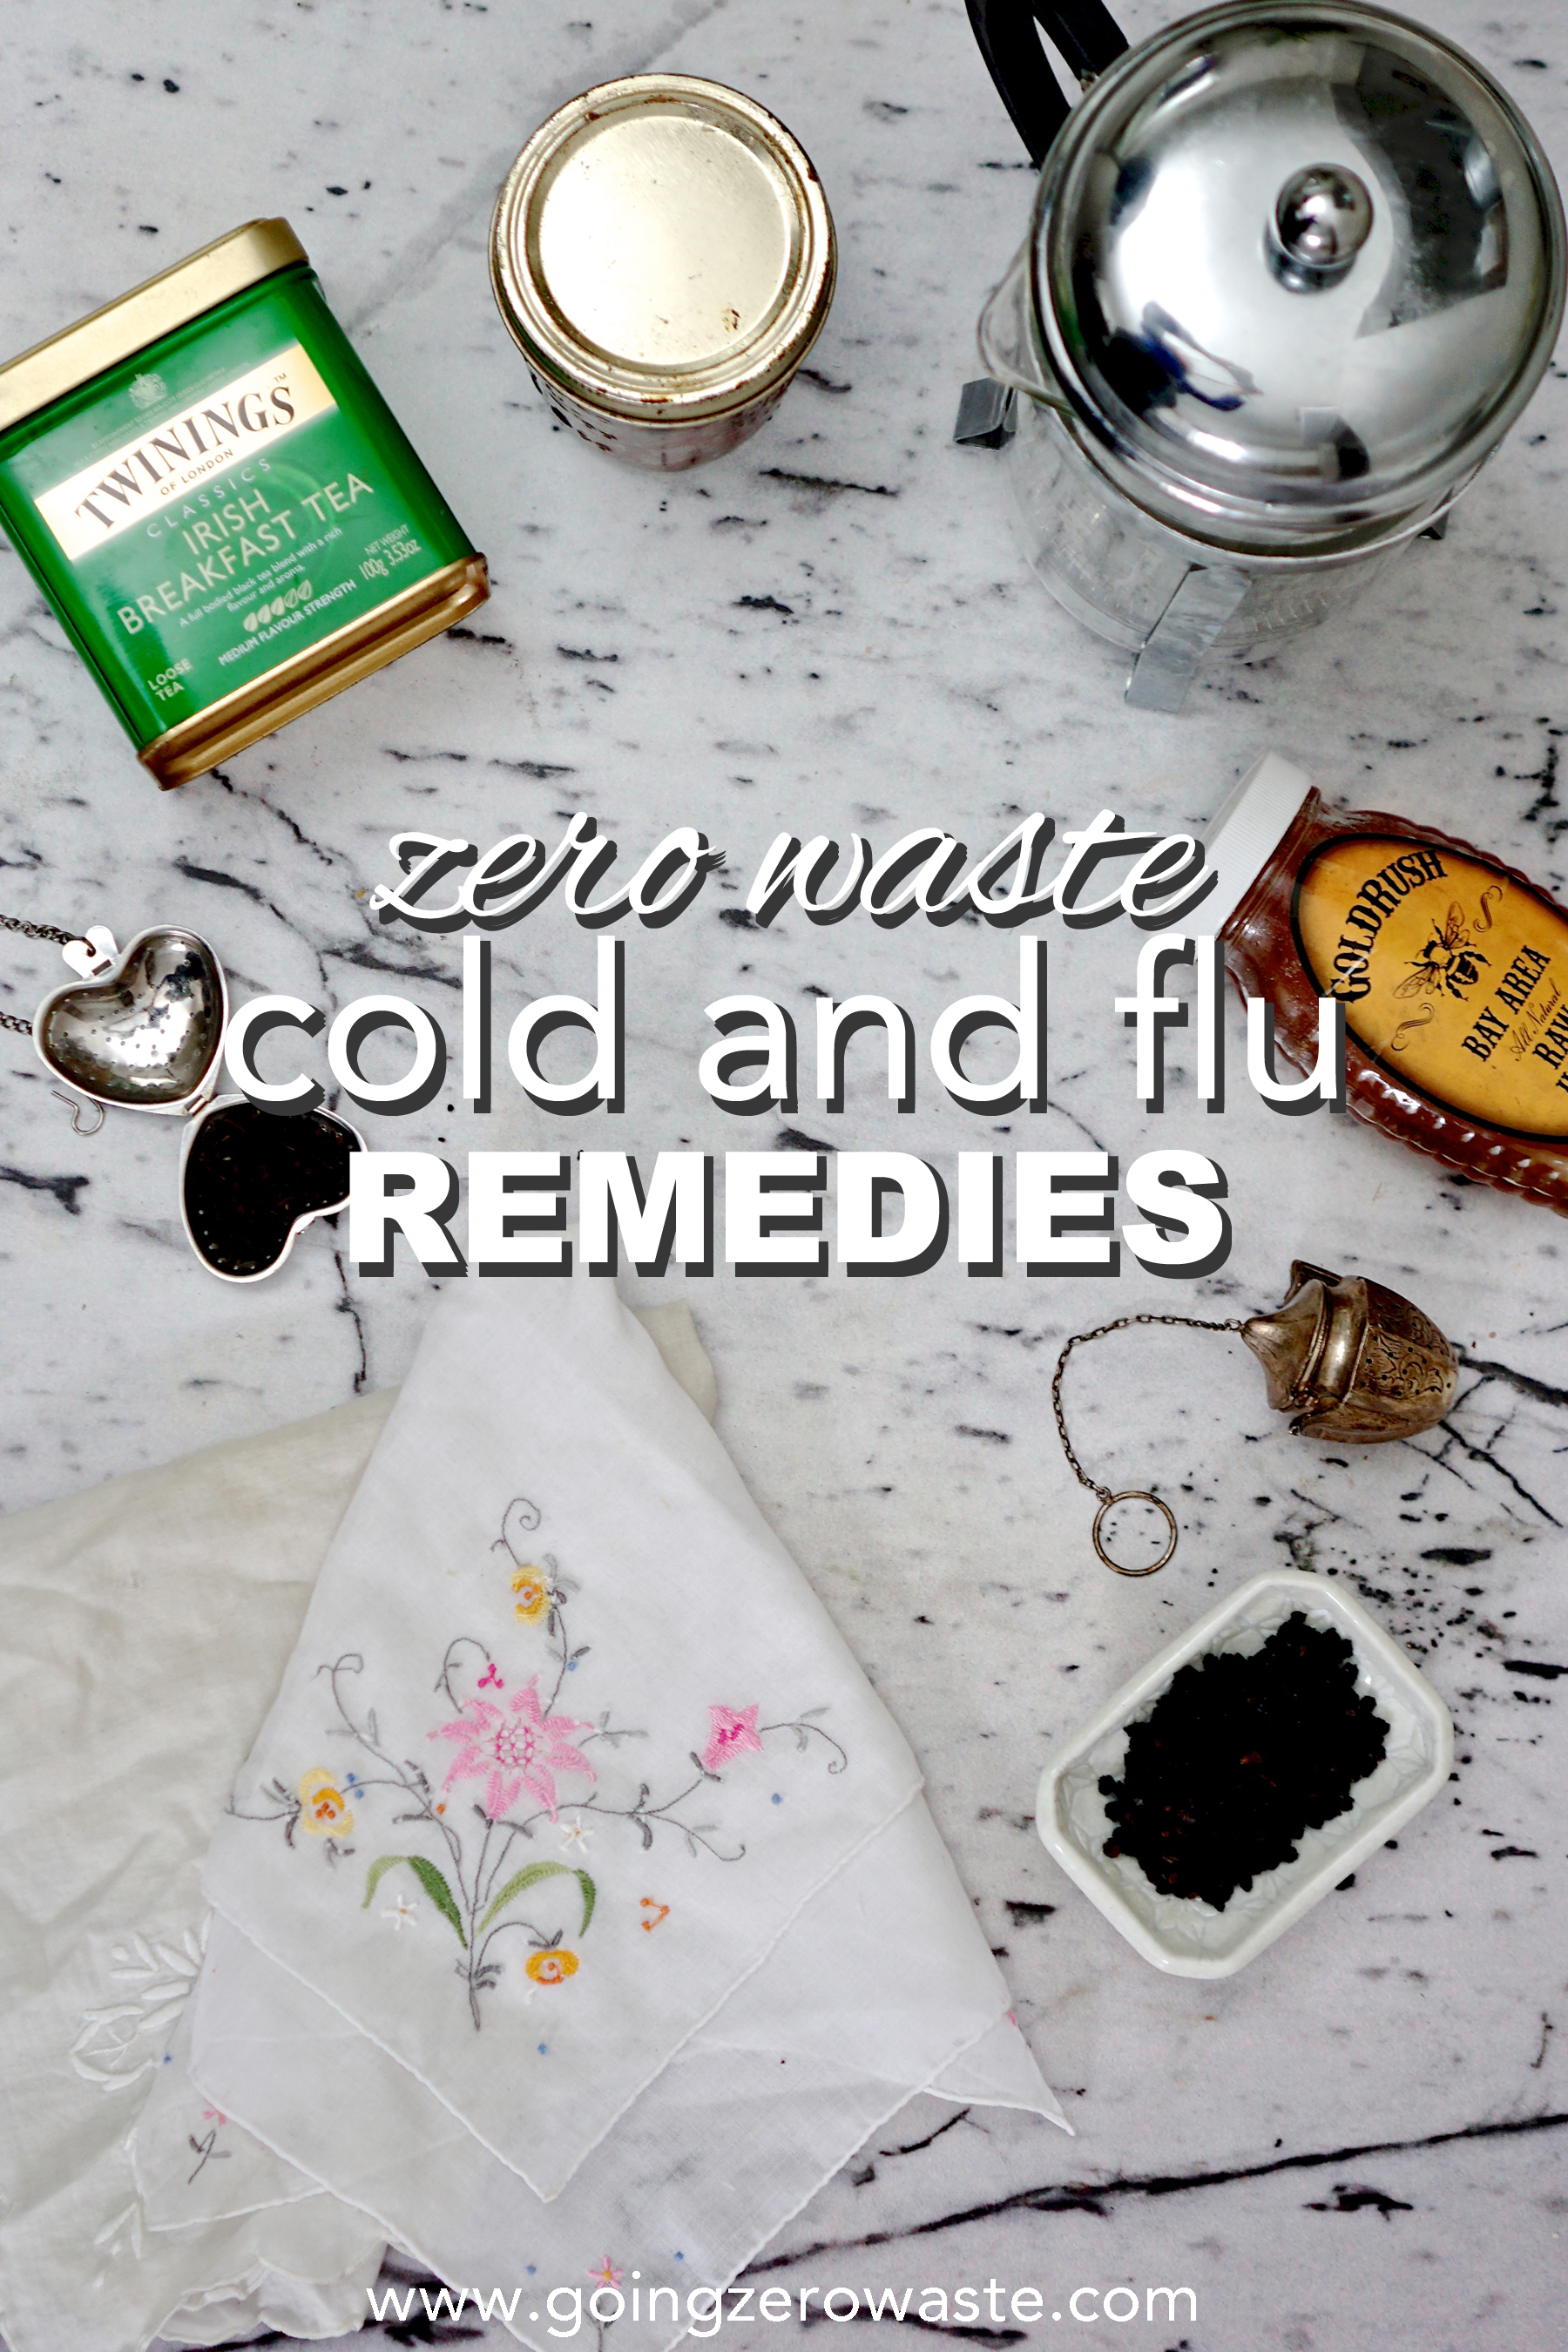 Zero waste cold and flu remedies from www.goingzerowaste.com